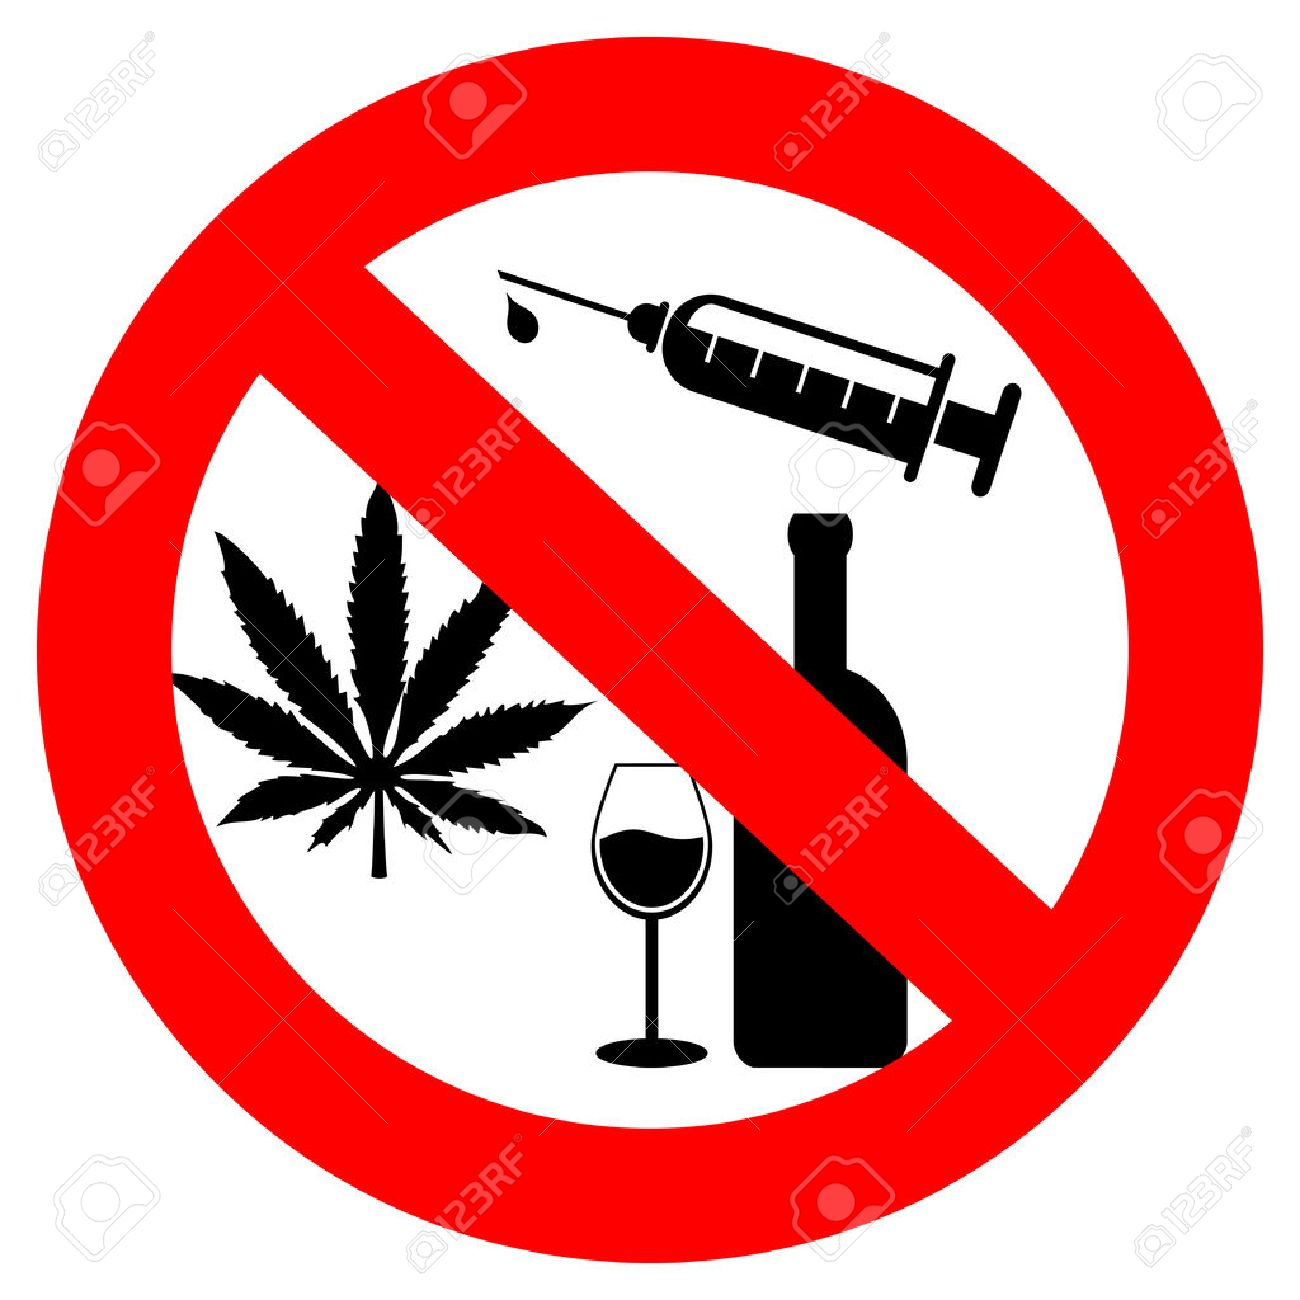 no drugs and alcohol sign royalty free cliparts vectors and stock rh 123rf com drug dealer clipart drug dealer clipart